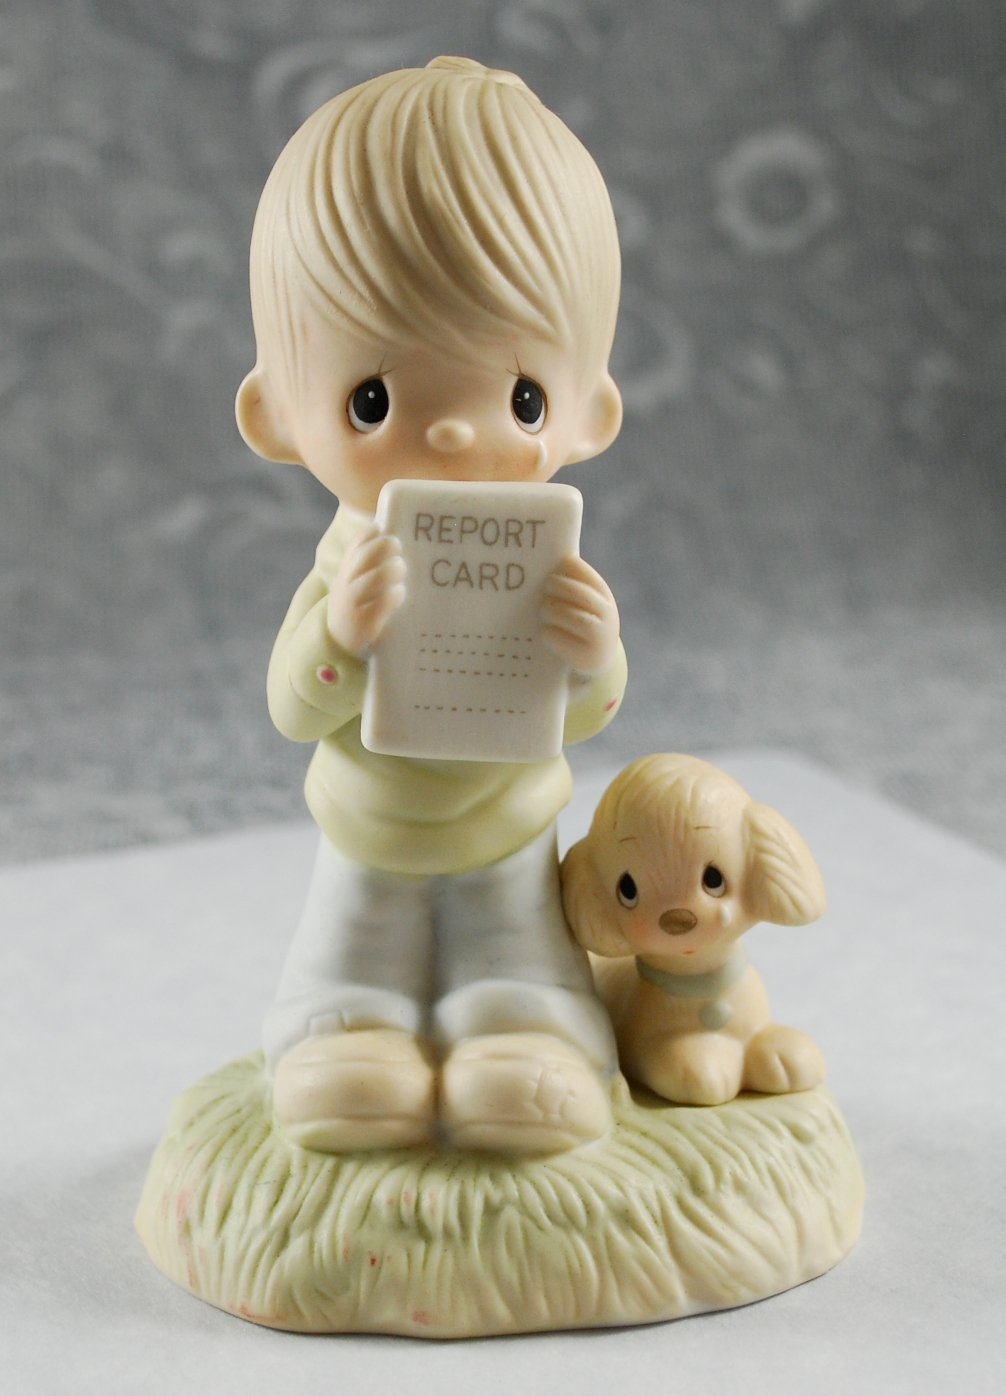 Precious Moments God Understands Boy Report Card Figurine E-1379B